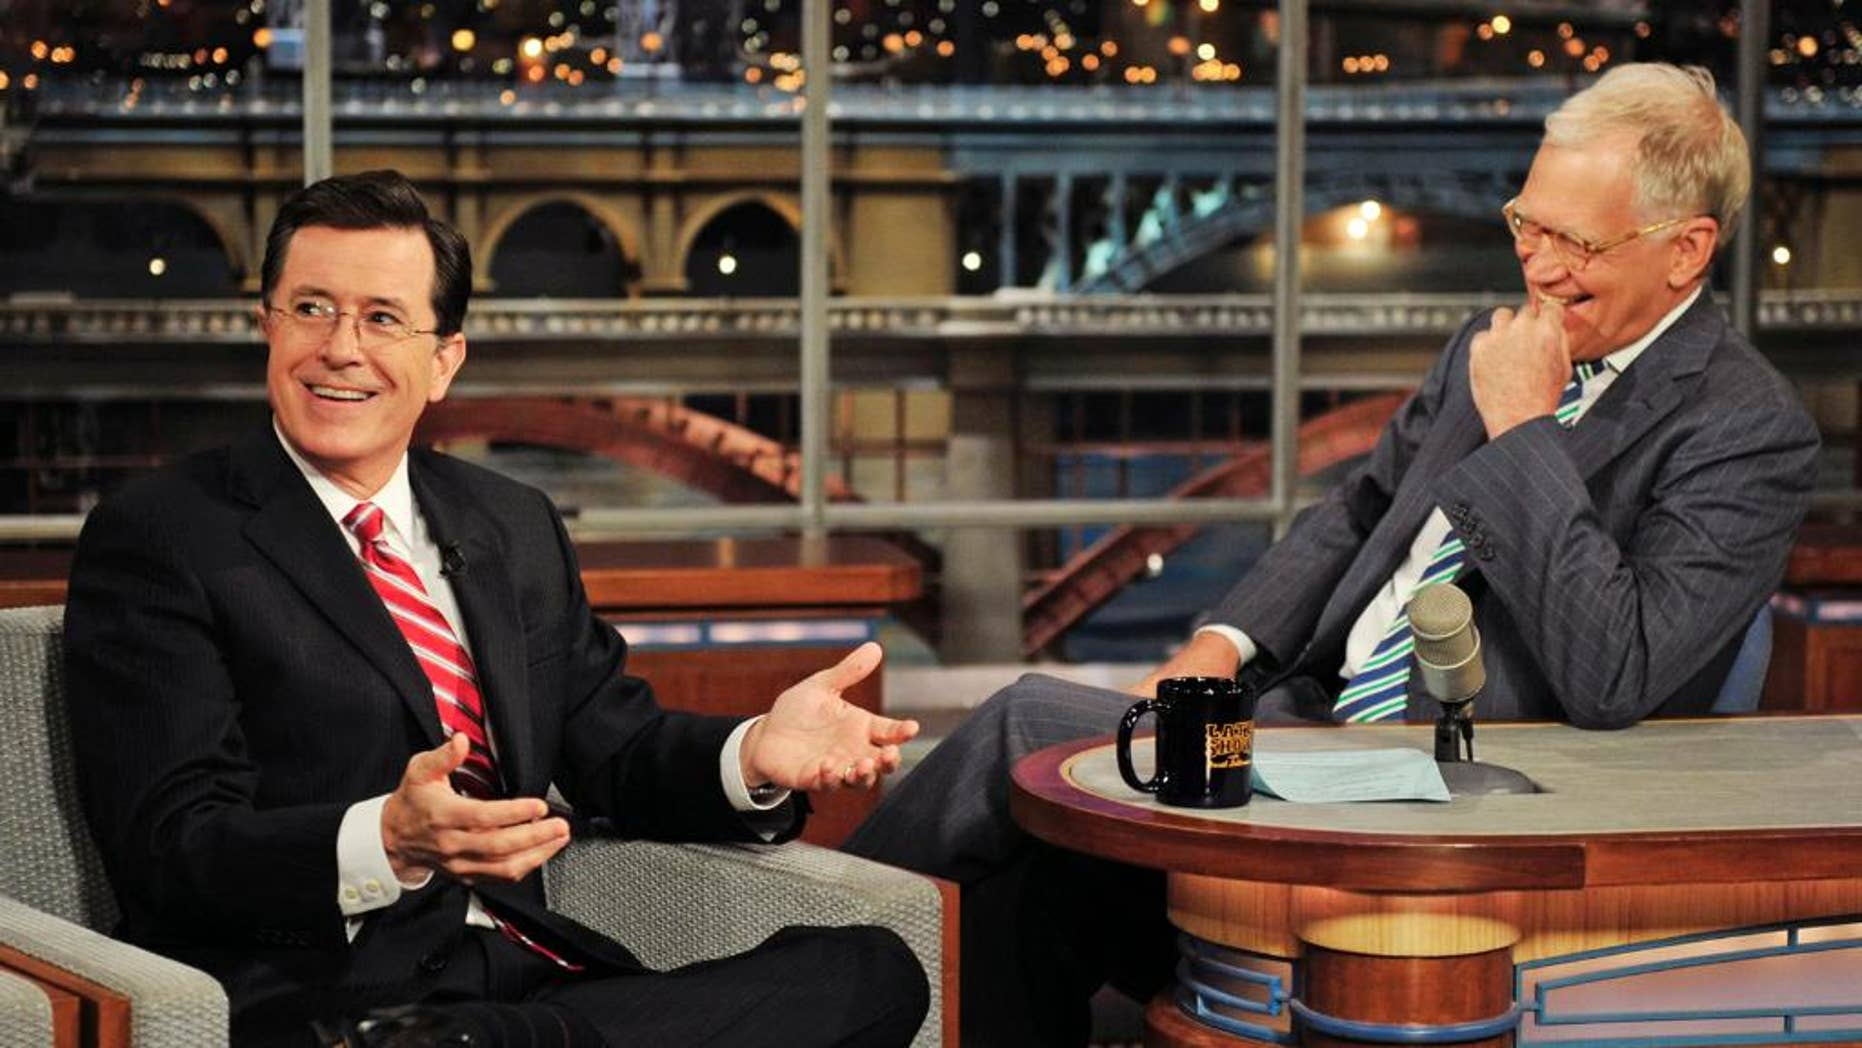 """In this May 3, 2012 photo provided by CBS, Stephen Colbert, left, host of the """"Colbert Report"""" on the Comedy Central Network, has a laugh on stage with host David Letterman on the set of the """"Late Show with David Letterman,"""" in New York. Colbert says on a visit to the late-night show he'll take over next year he's obviously """"thrilled"""" to be succeeding David Letterman. The Comedy Central host told Letterman on CBS' """"Late Show"""" on Tuesday, April 22, 2014, he's going to do whatever Letterman has done.  (AP Photo/CBS, John Paul Filo) MANDATORY CREDIT, NO SALES, NO ARCHIVE, FOR NORTH AMERICAN USE ONLY"""